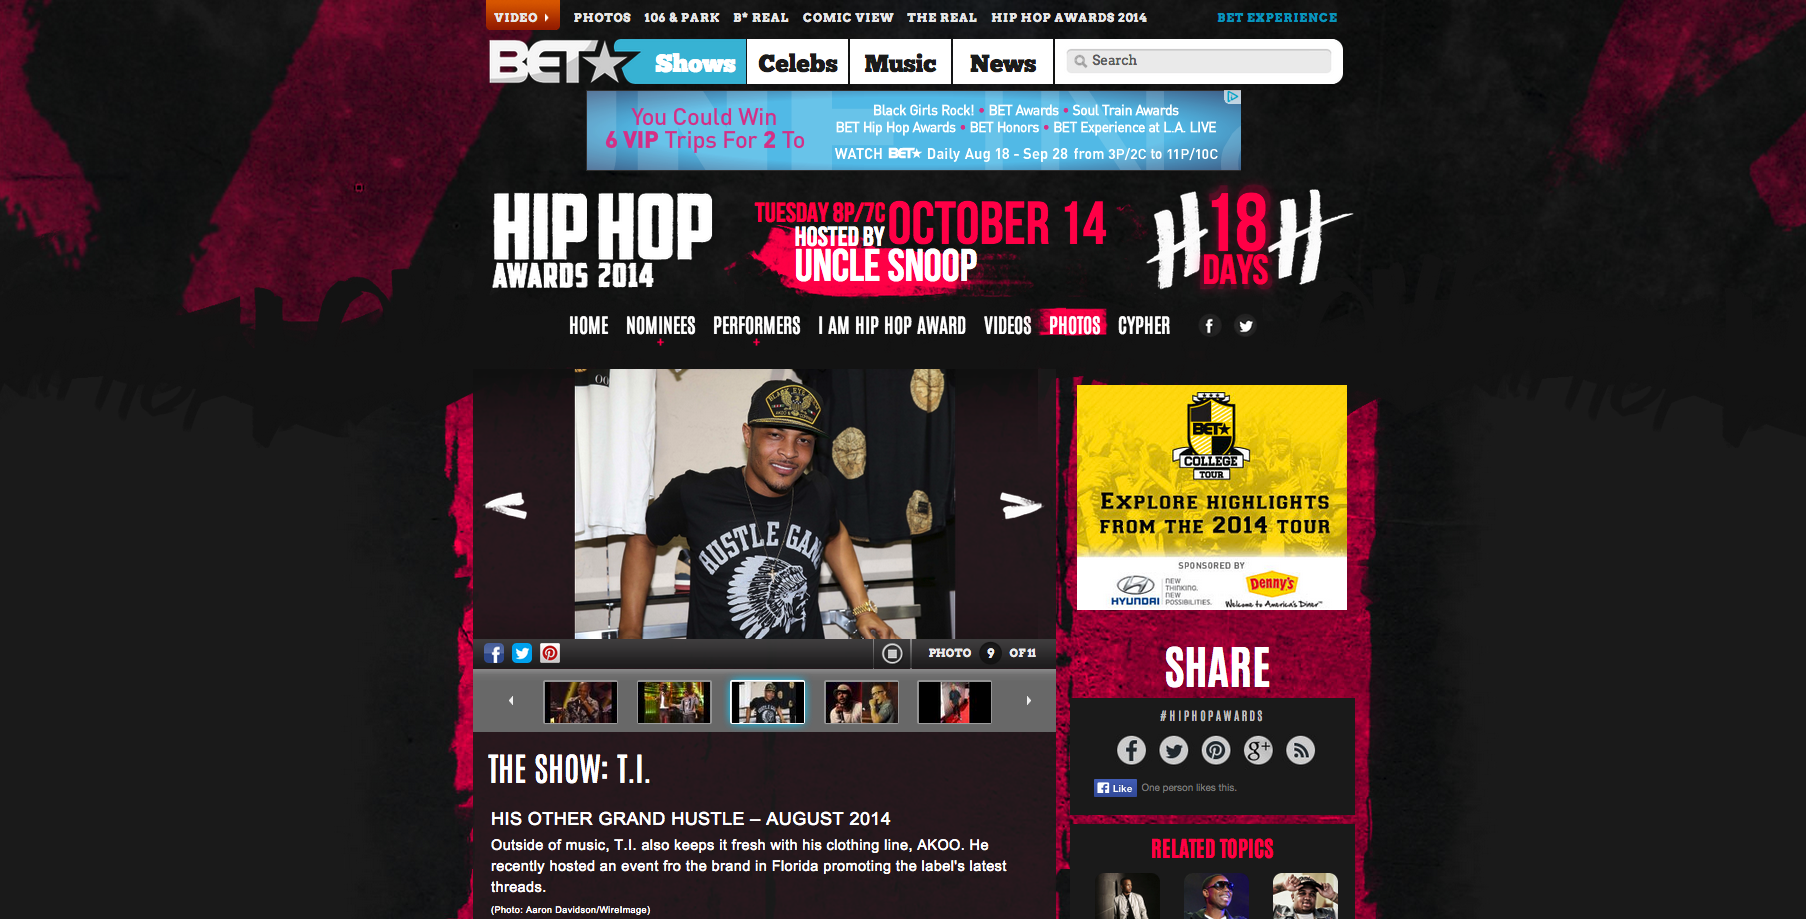 TI on BET.com